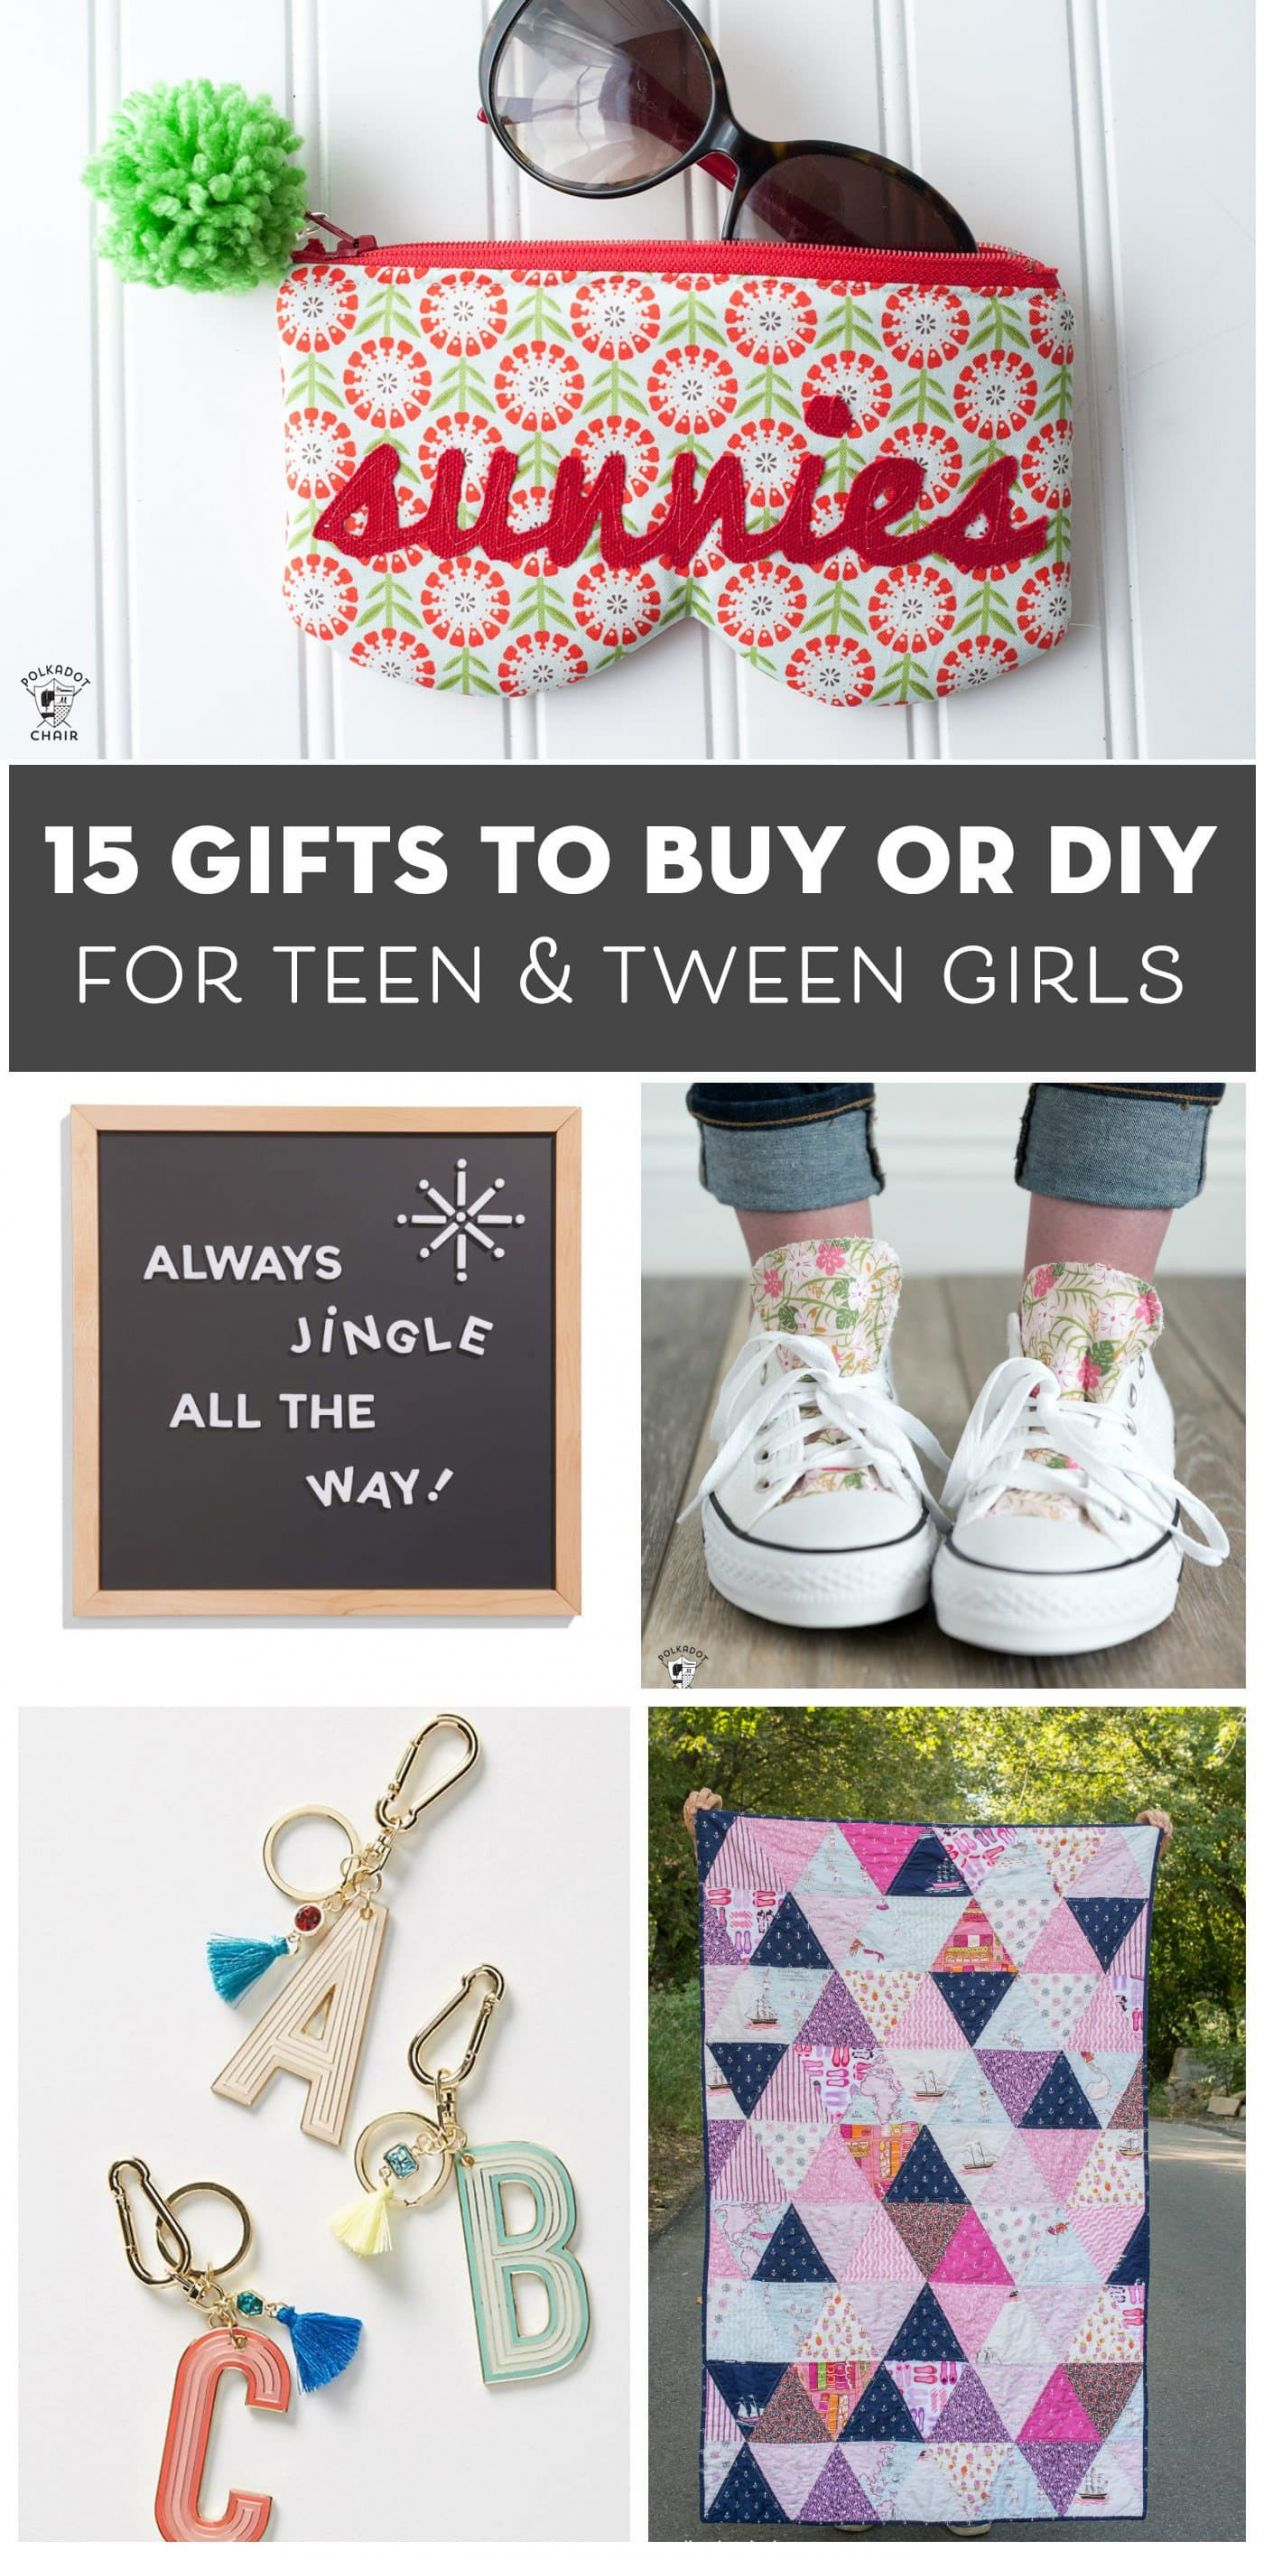 Gift Ideas For Girls  15 Gift Ideas for Teenage Girls That You Can DIY or Buy